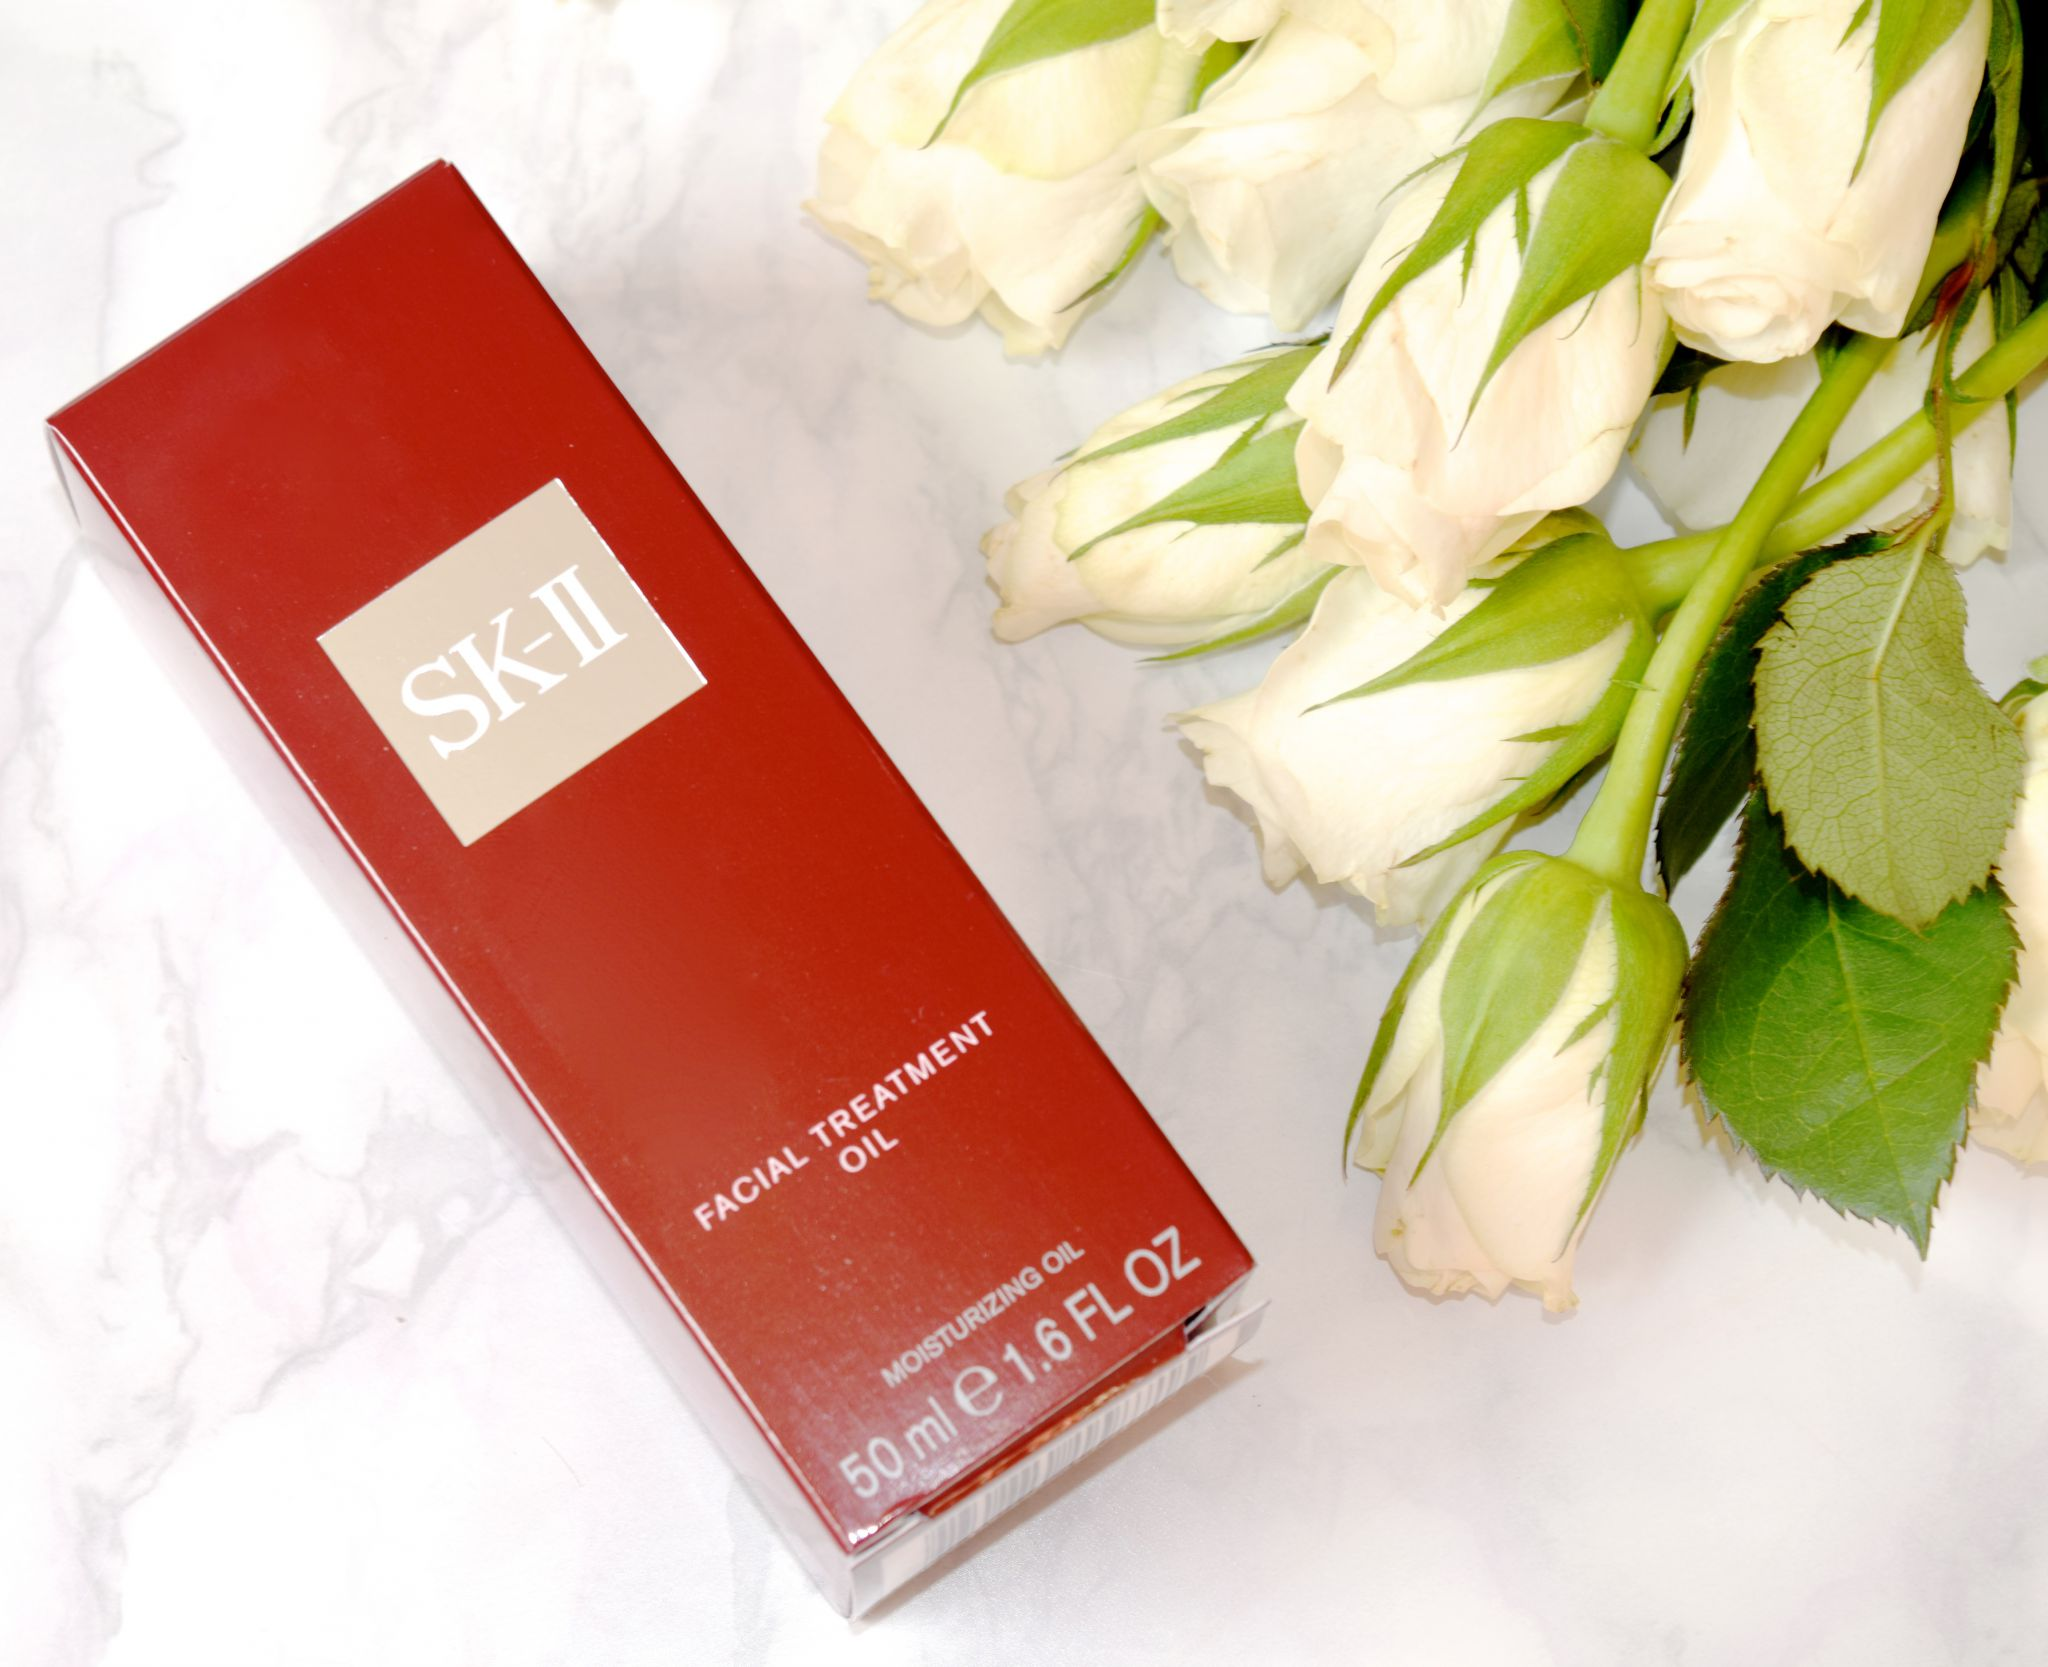 SK-II Facial Treatment Oil